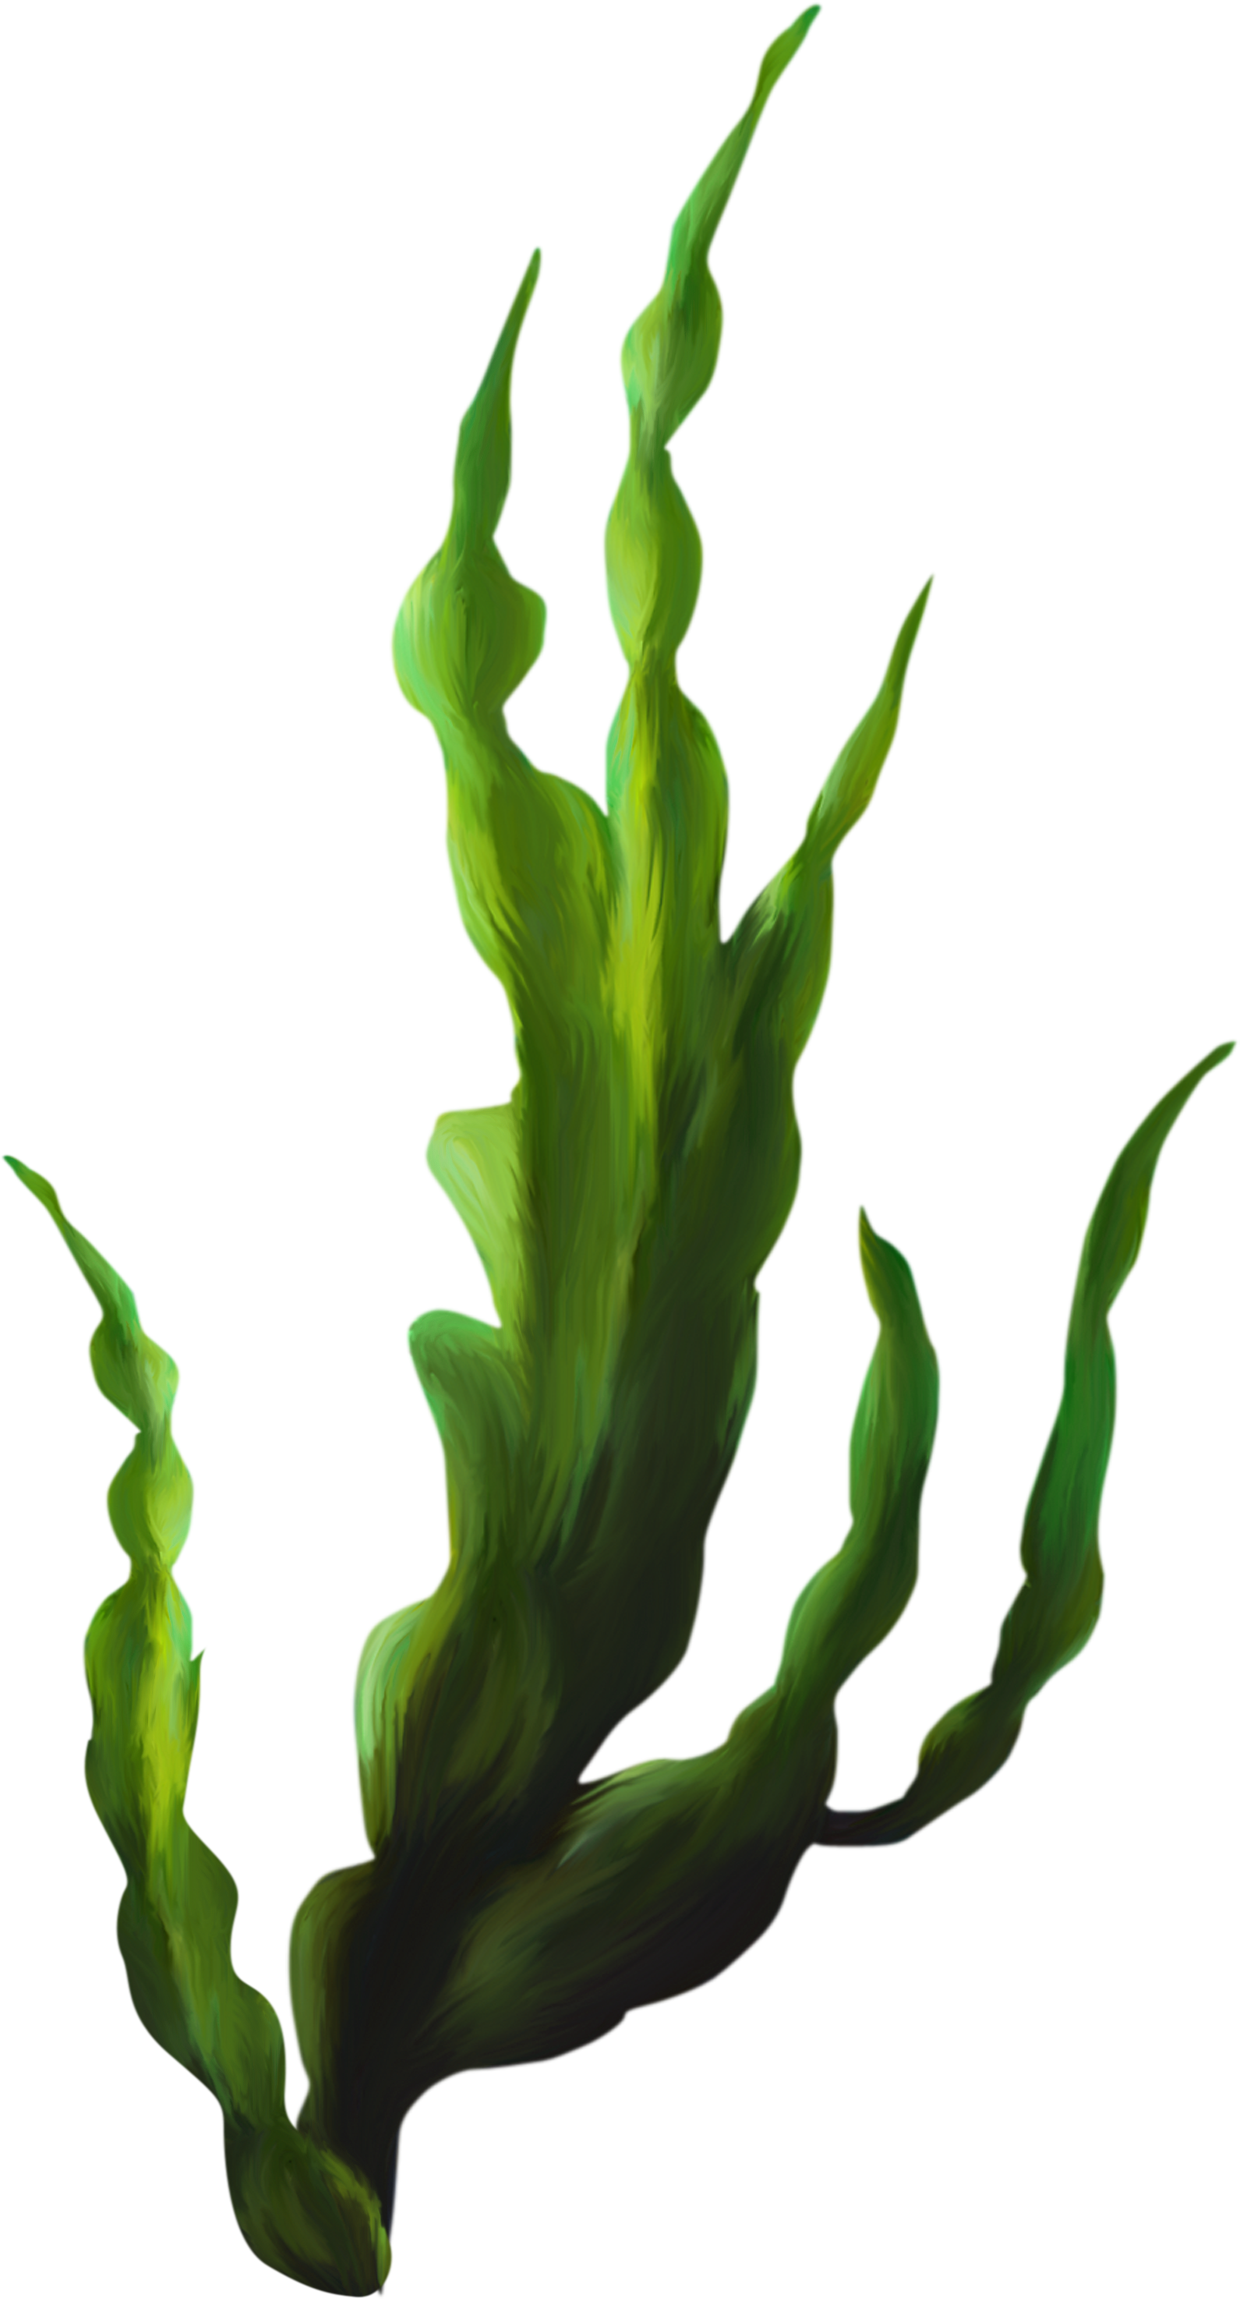 Seaweed png transparent. Collection of clipart